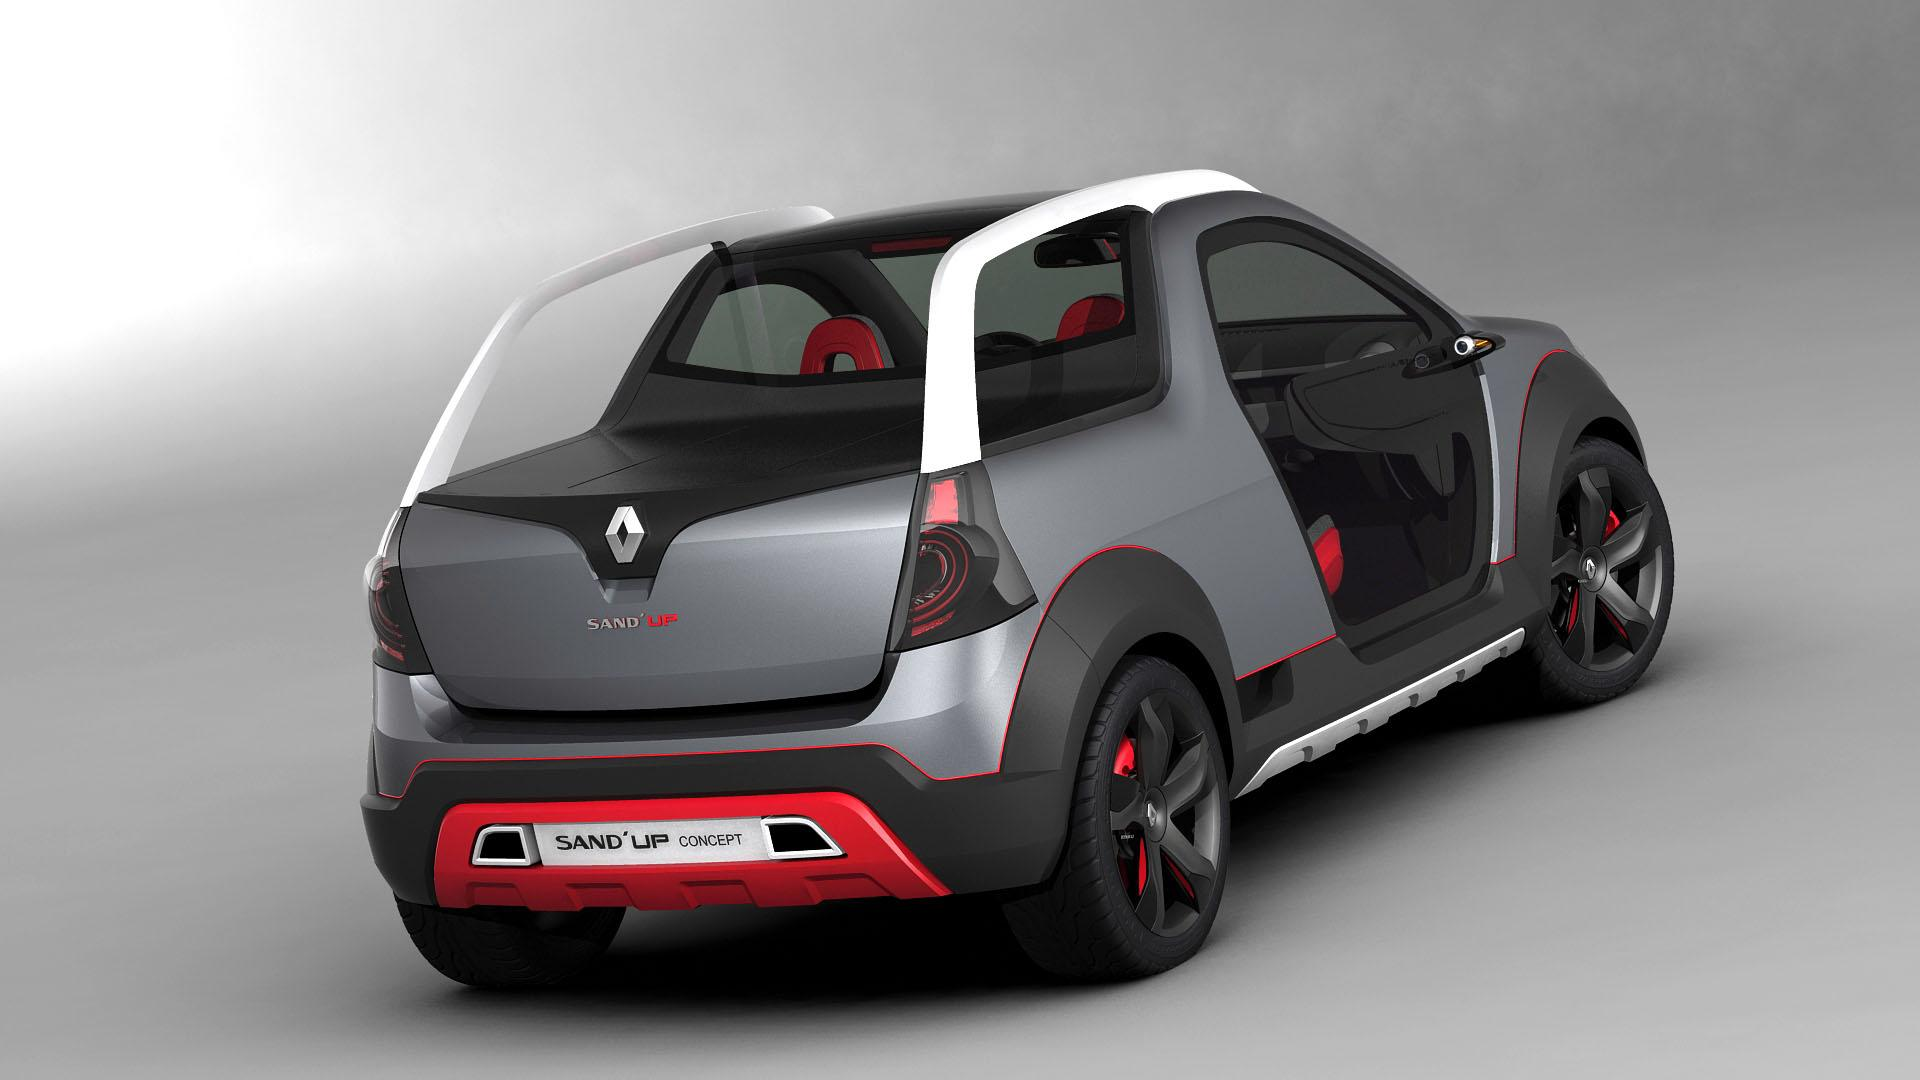 2019 Renault Sand up Concept photo - 2